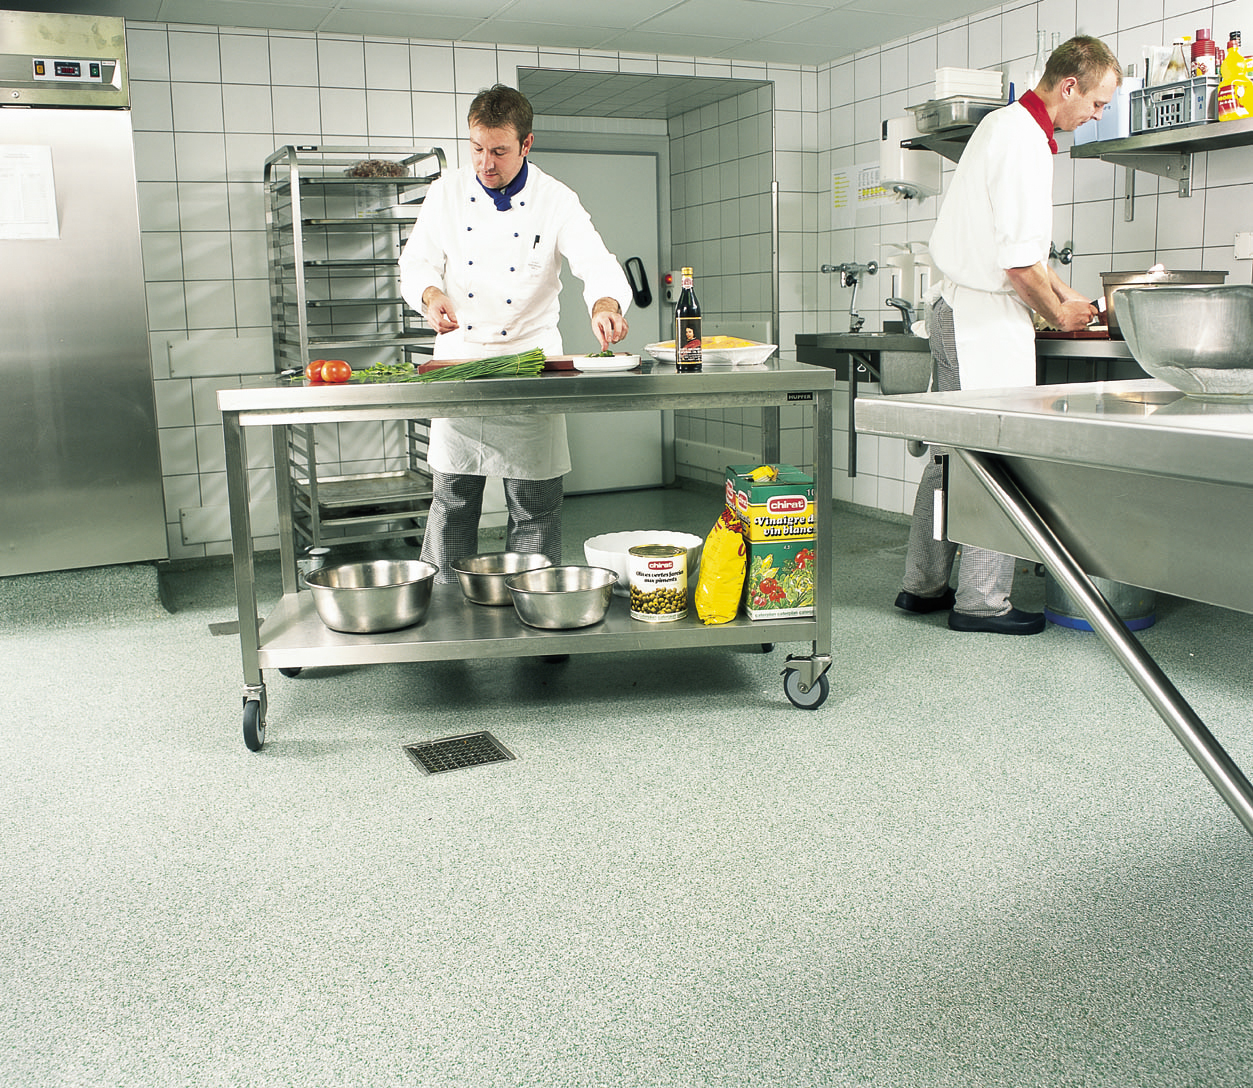 types of kitchen flooring commercial kitchen flooring Flake type of kitchen flooring with chefs cooking